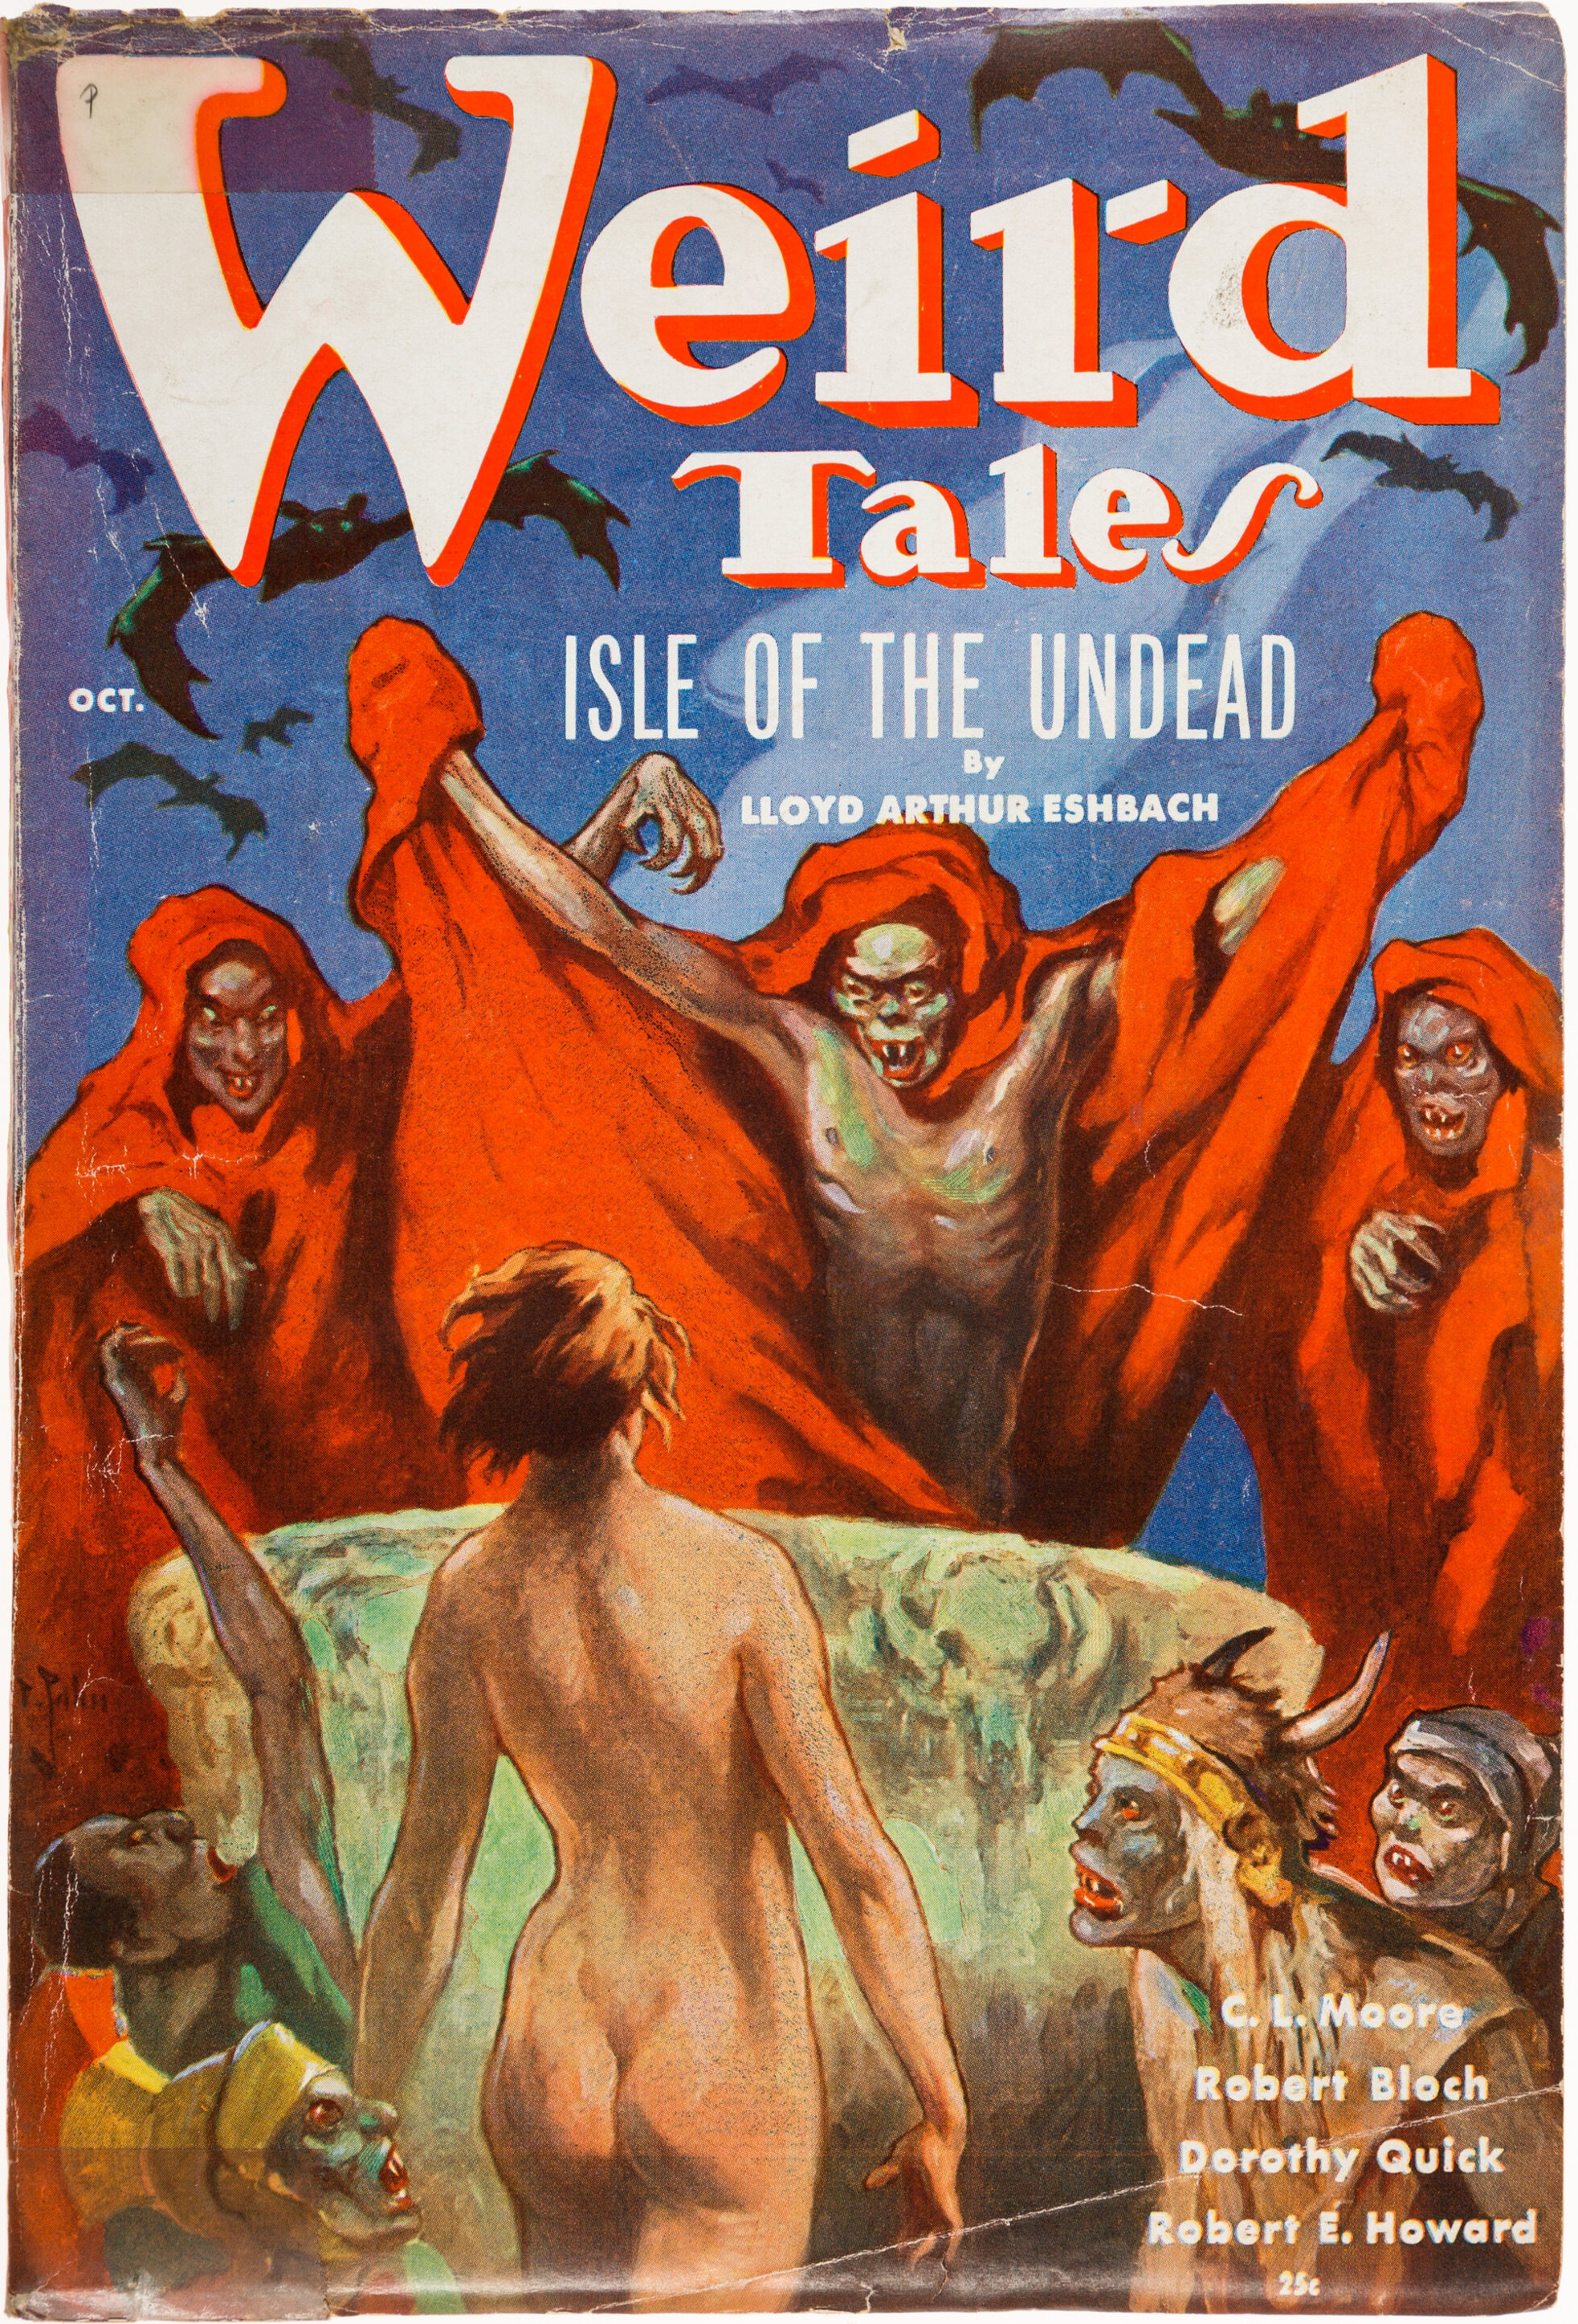 dating the undead magazine